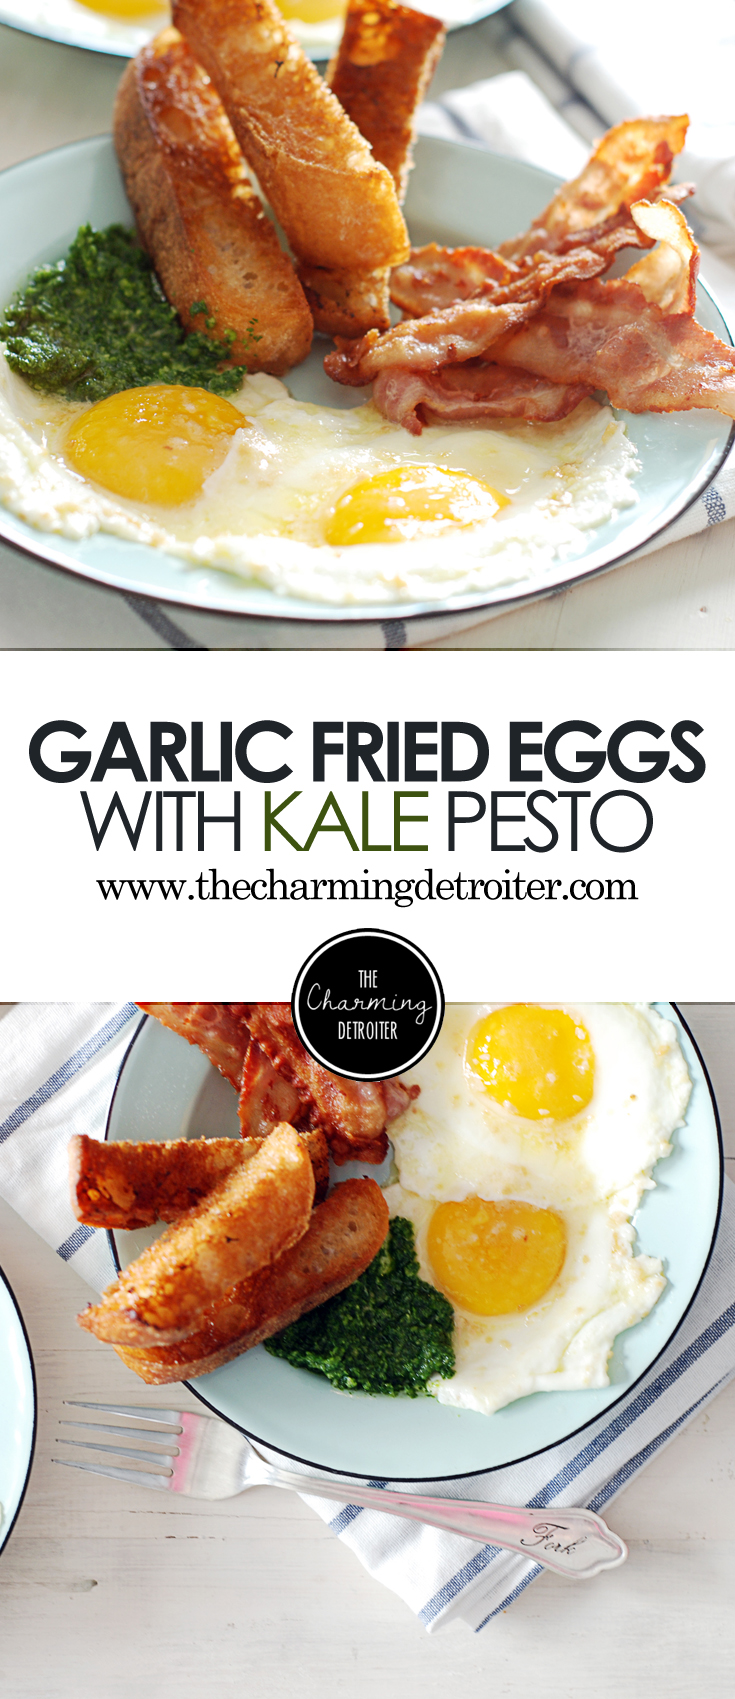 These eggs with kale pesto are fried with garlic and paired with crispy toast points, oven cooked bacon, and a beautifully refreshing lemon bacon vinaigrette.